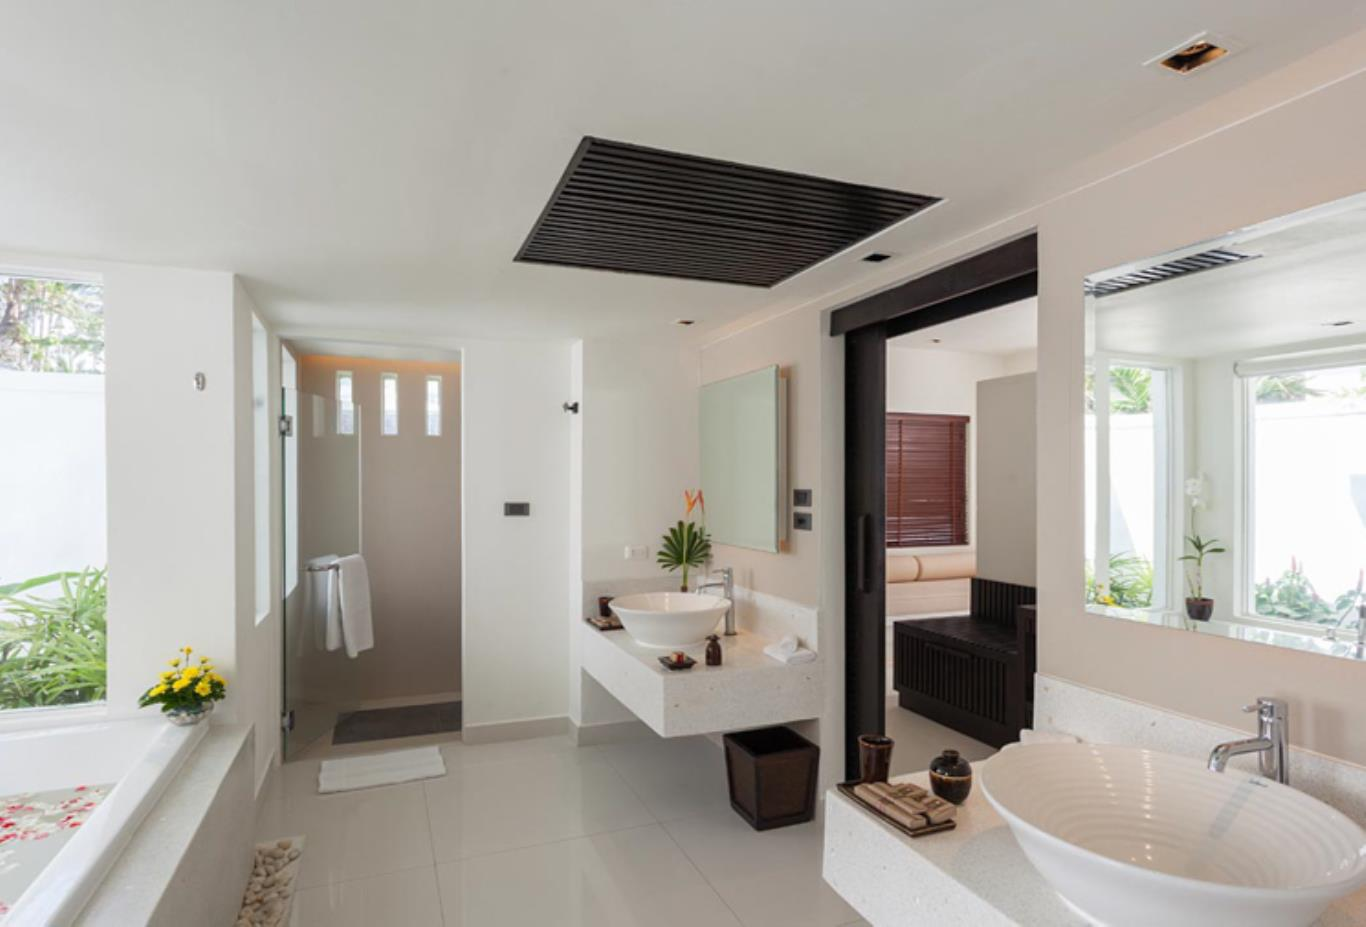 Grand Deluxe Villa bathroom